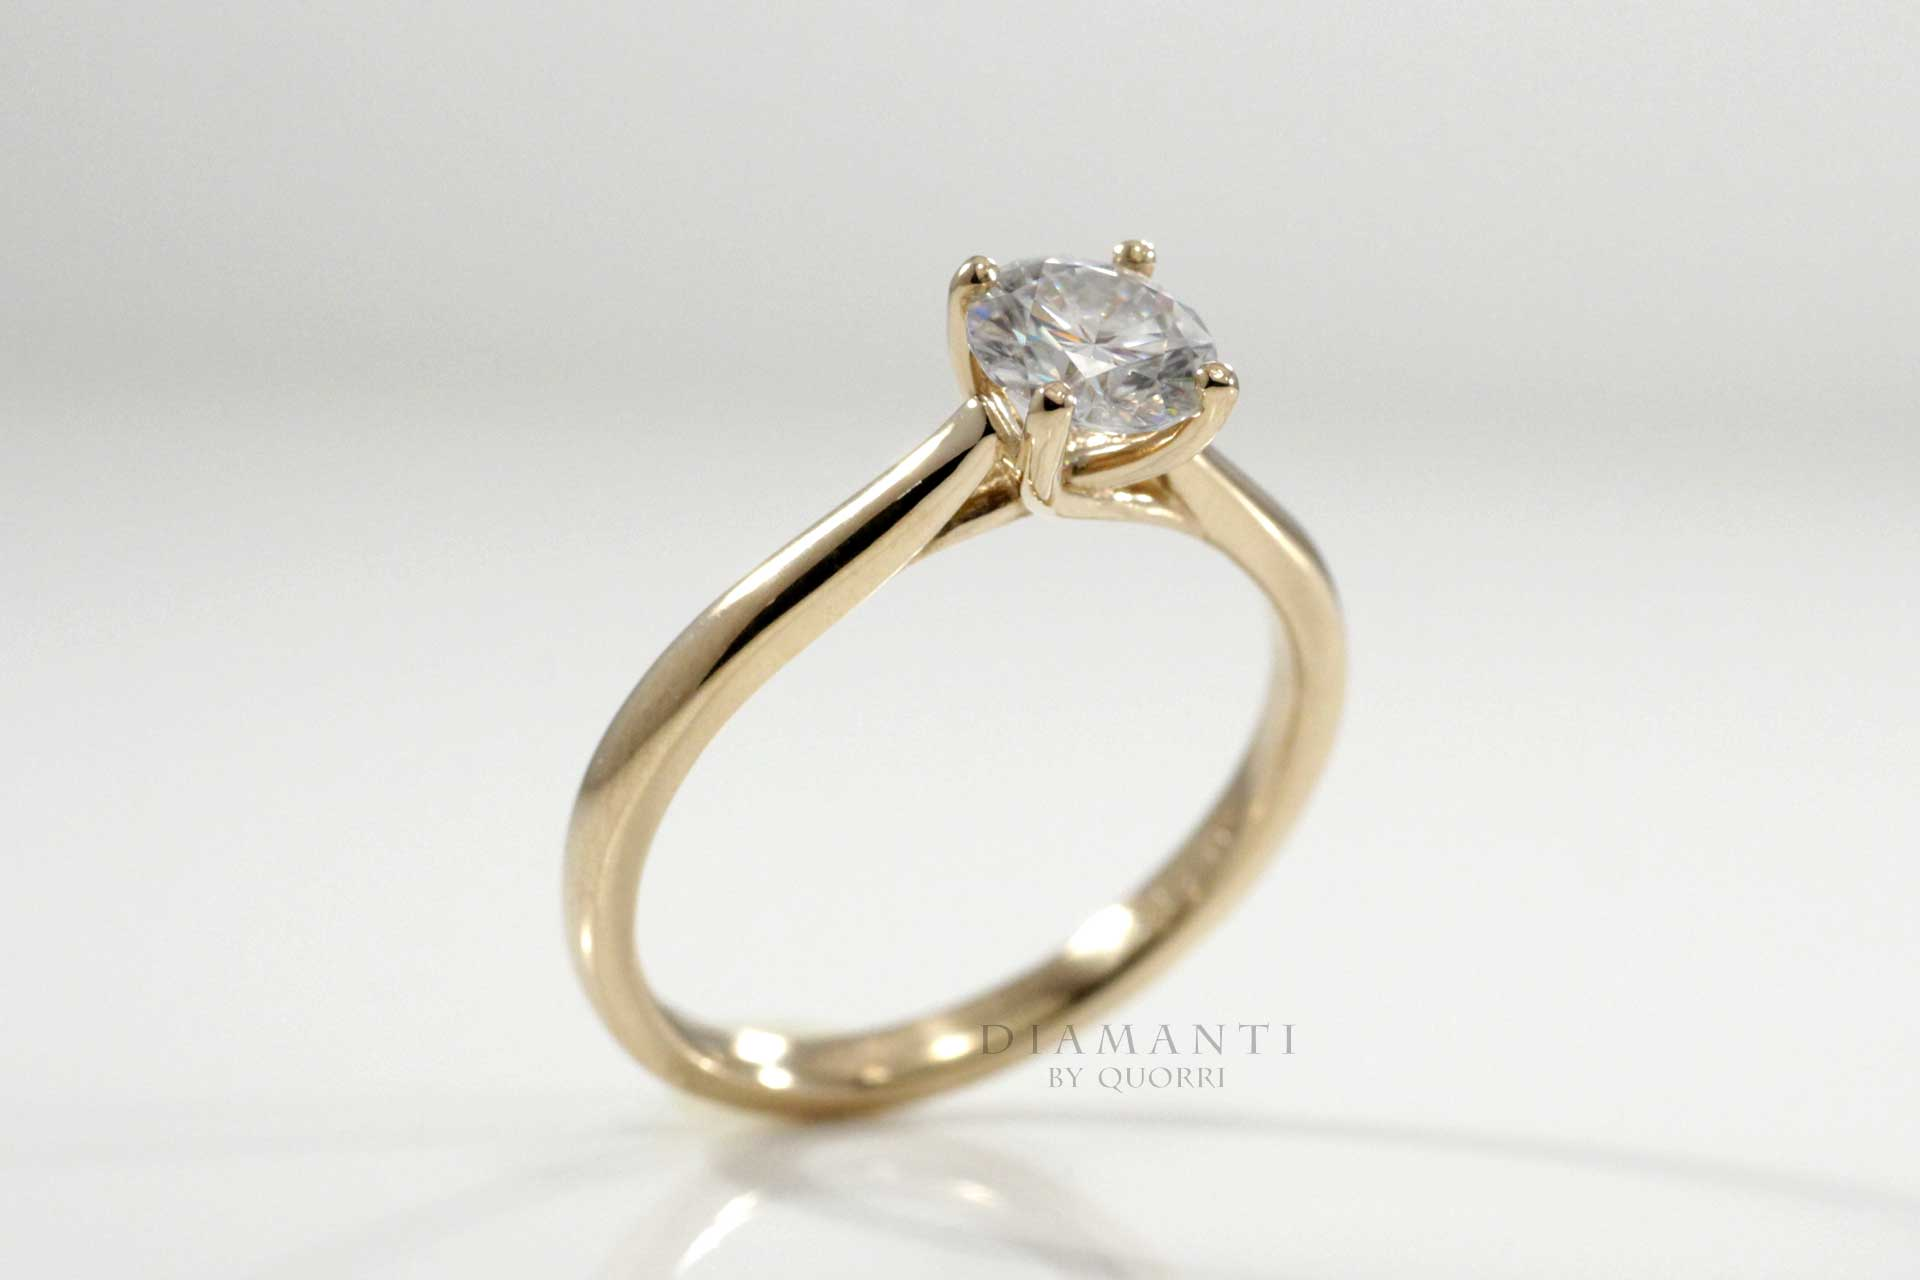 petite diamond solitaire ring in yellow gold made in canada